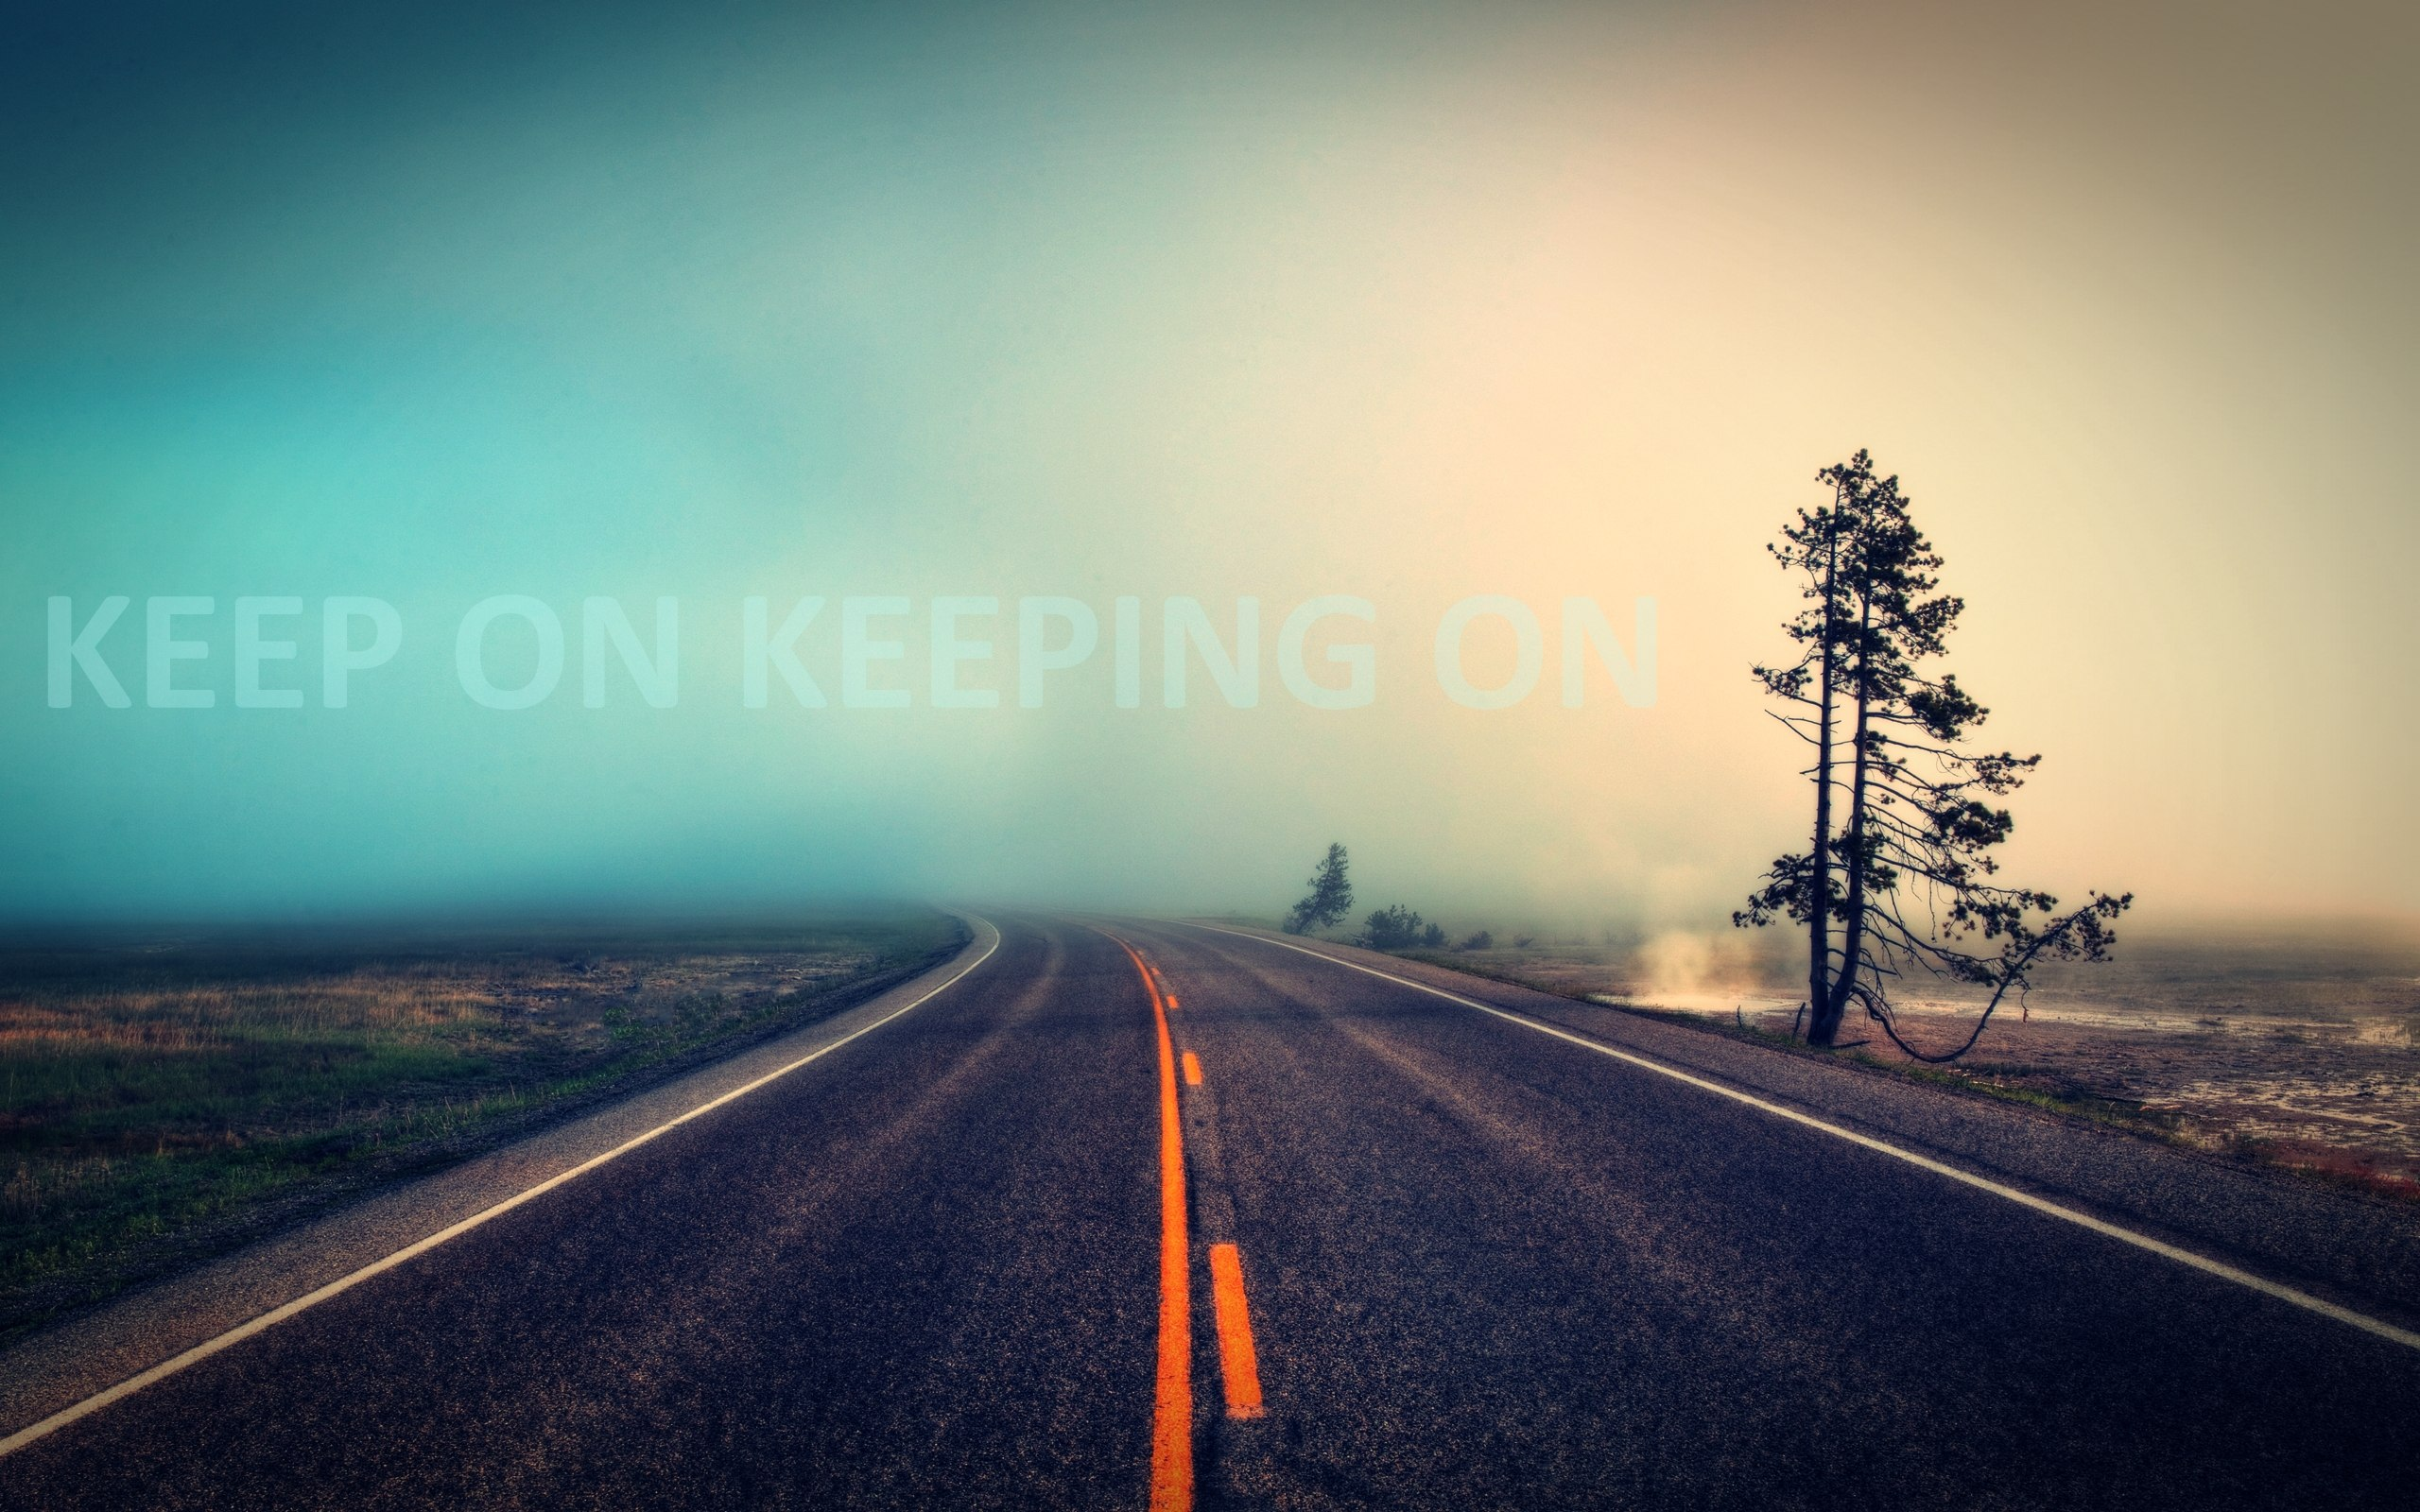 Empty road wallpaper 2560x1600 HQ WALLPAPER - (#26581)